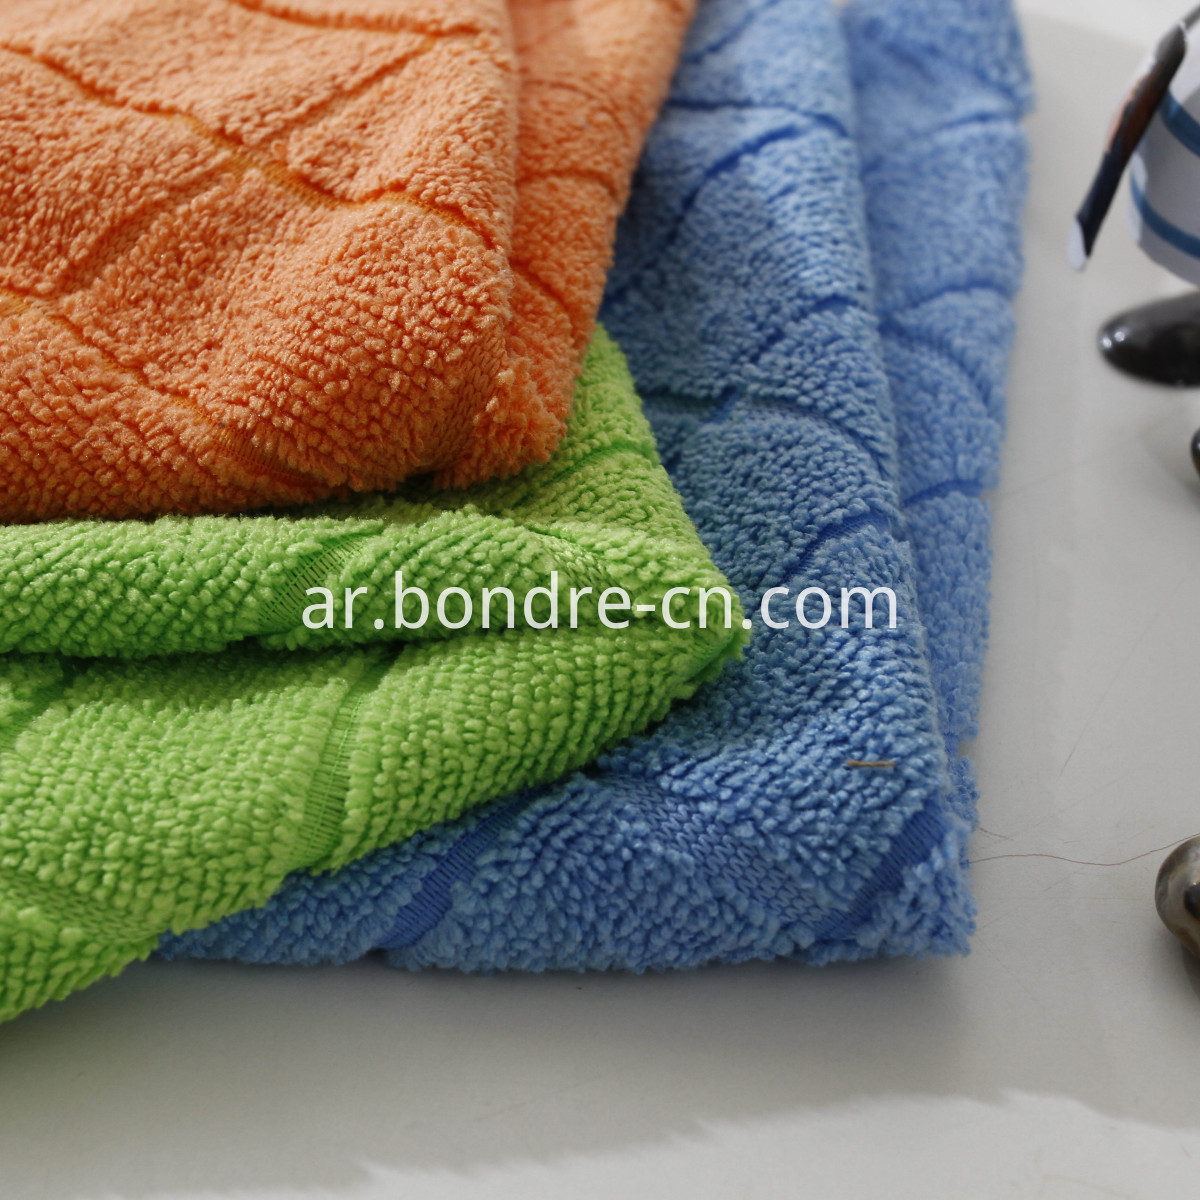 Microfiber Clean Towel With Check Design (4)